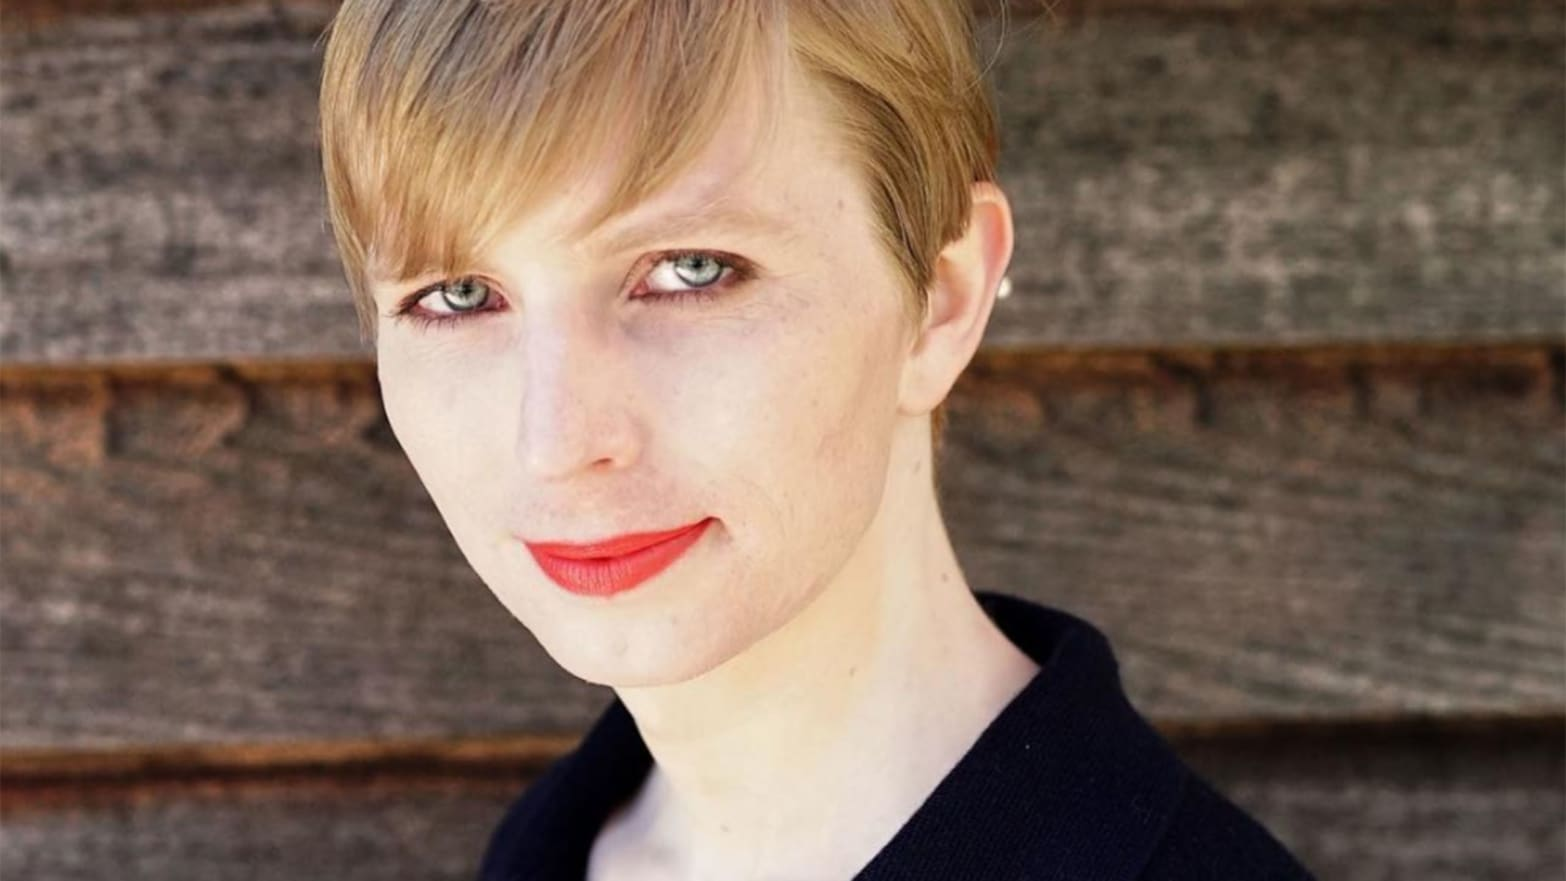 767cb63a20d2 What That Stunning Photograph of Chelsea Manning Really Shows